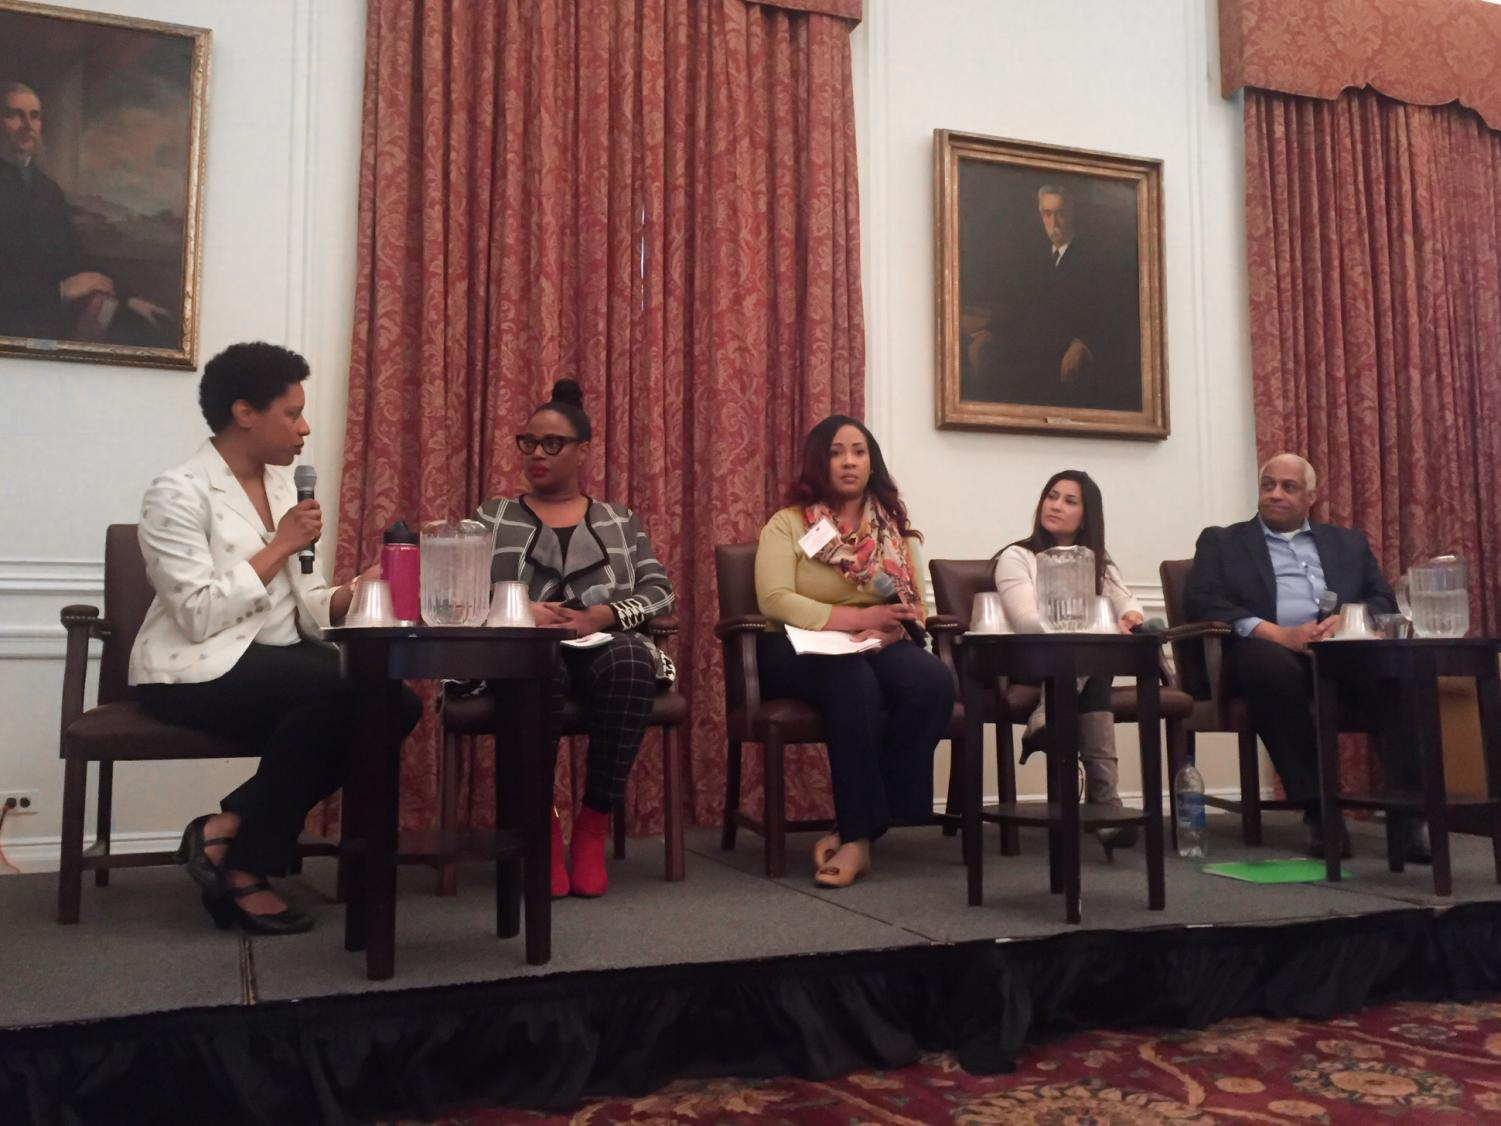 Left to right: Whitney Tome, Myra Mathis, Ebony Martin, Pallavi Phartiyal and Anthony Tansimore. The Institute for Policy Integrity at NYU School of Law hosted an event in which panelists discussed how the environmental movement can encourage diversity.